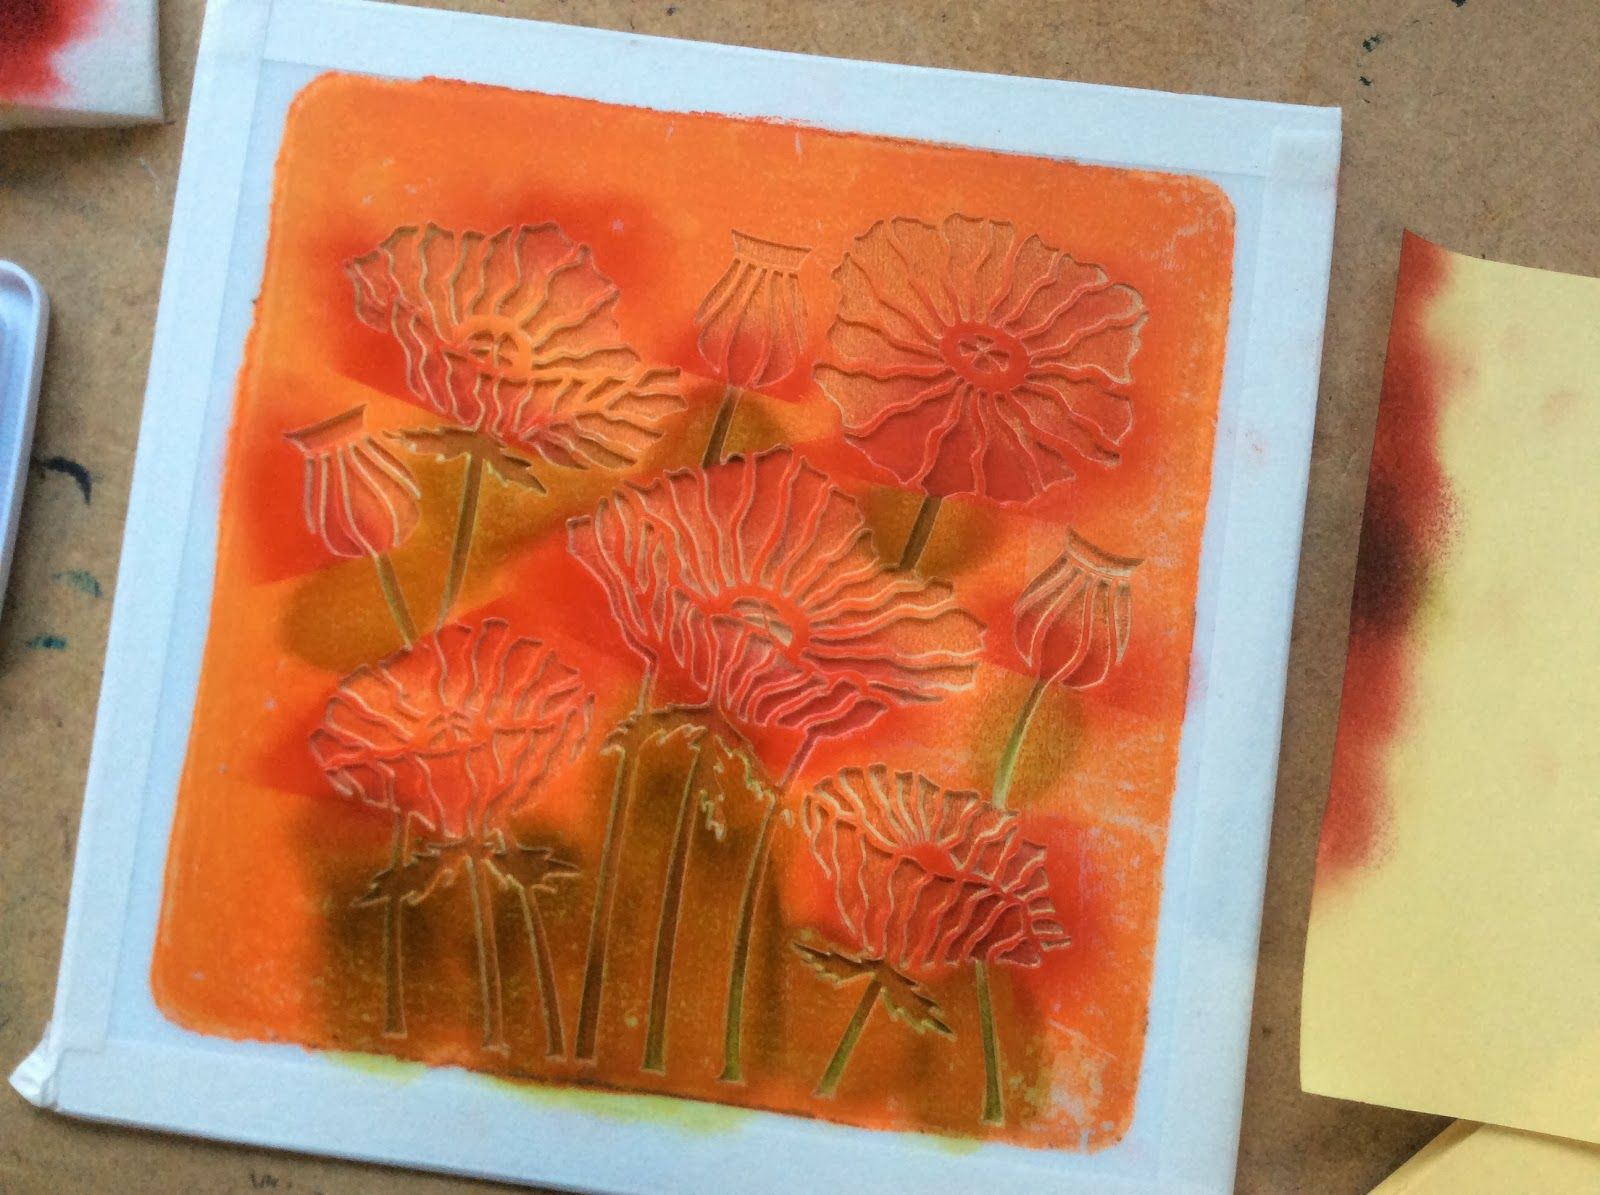 Barbara Gray's Blog. One Day at a Time.: New Poppies, served on a Gelli Plate